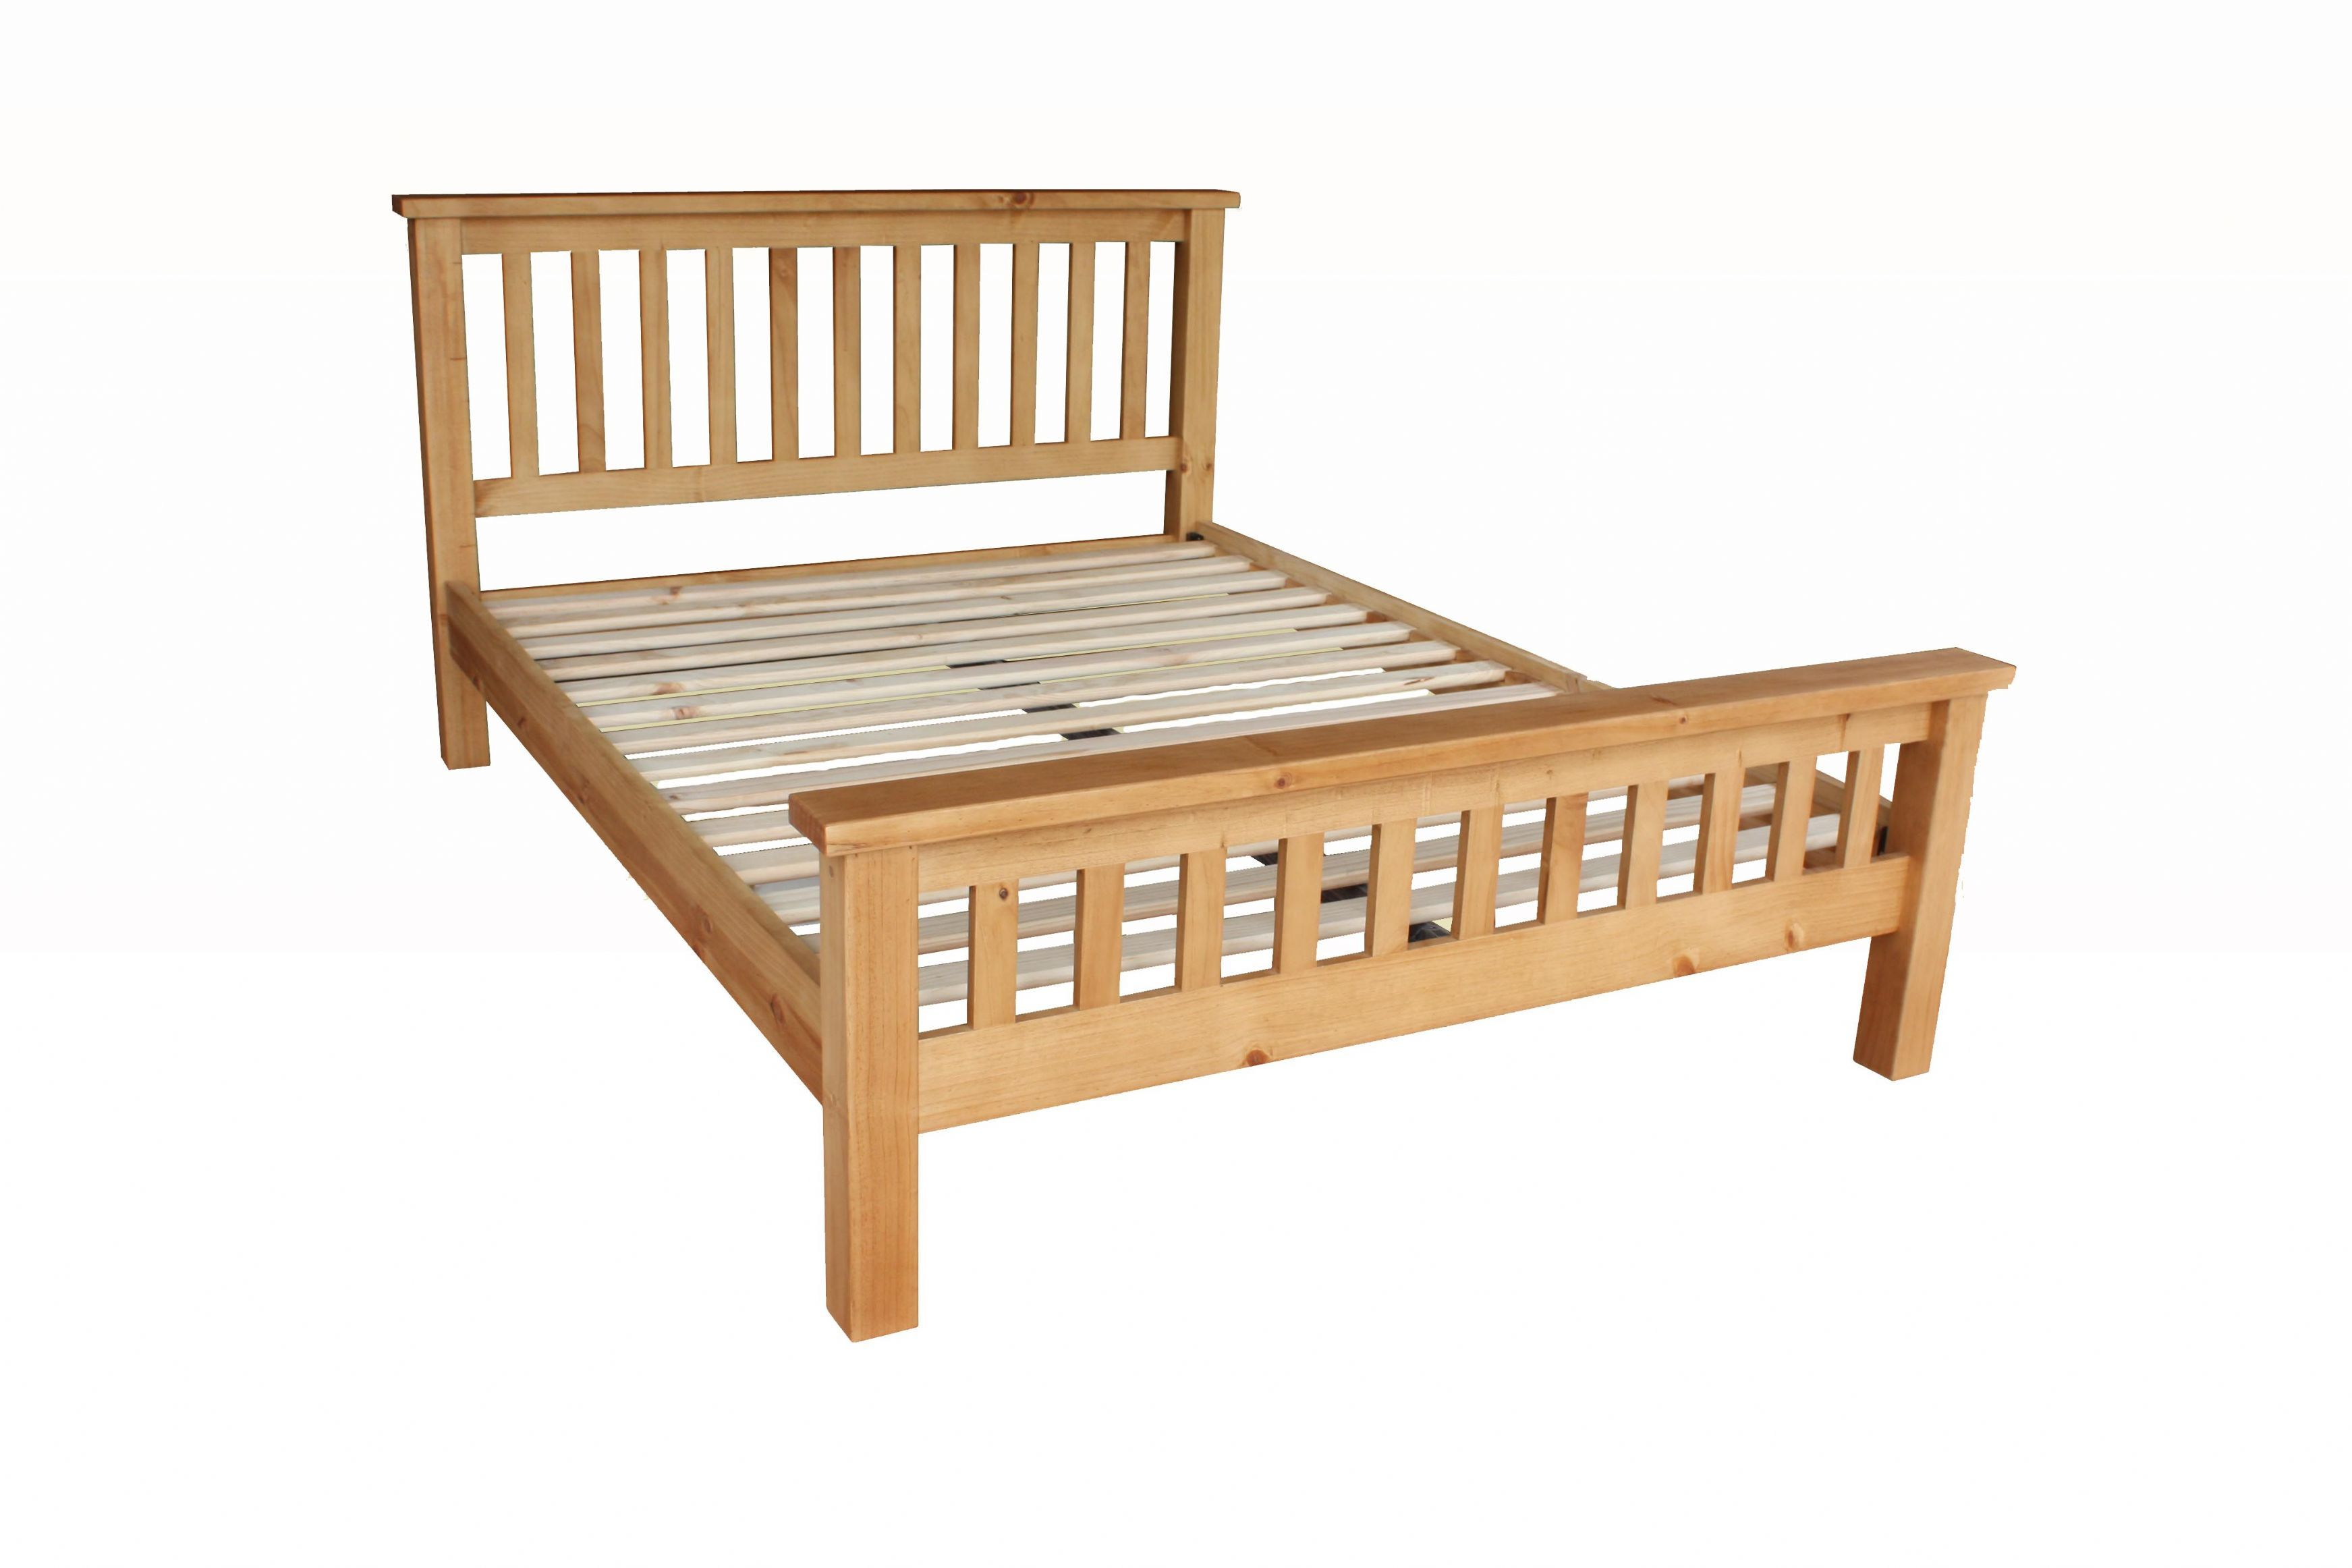 Queen Bed Frame Fantastic Furniture Amazing Queen Pine Bed Frames With Gorgeous Designs